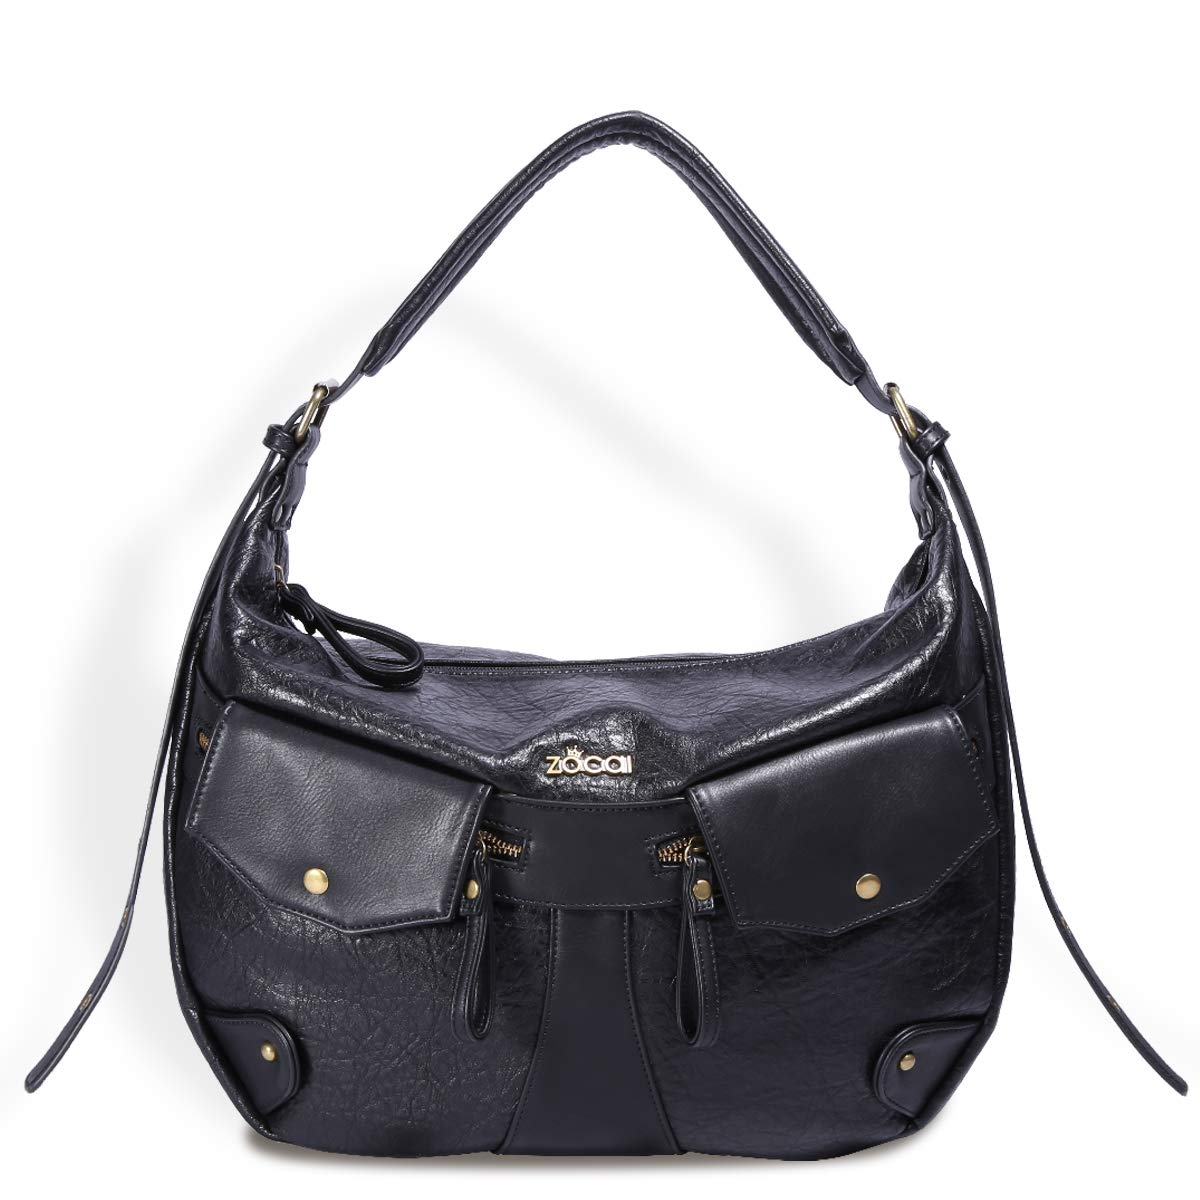 Black ZOCAI Vintage Hobo Handbag for Women Soft Leather Shoulder Bag Casual Crossbody Handbag Purse